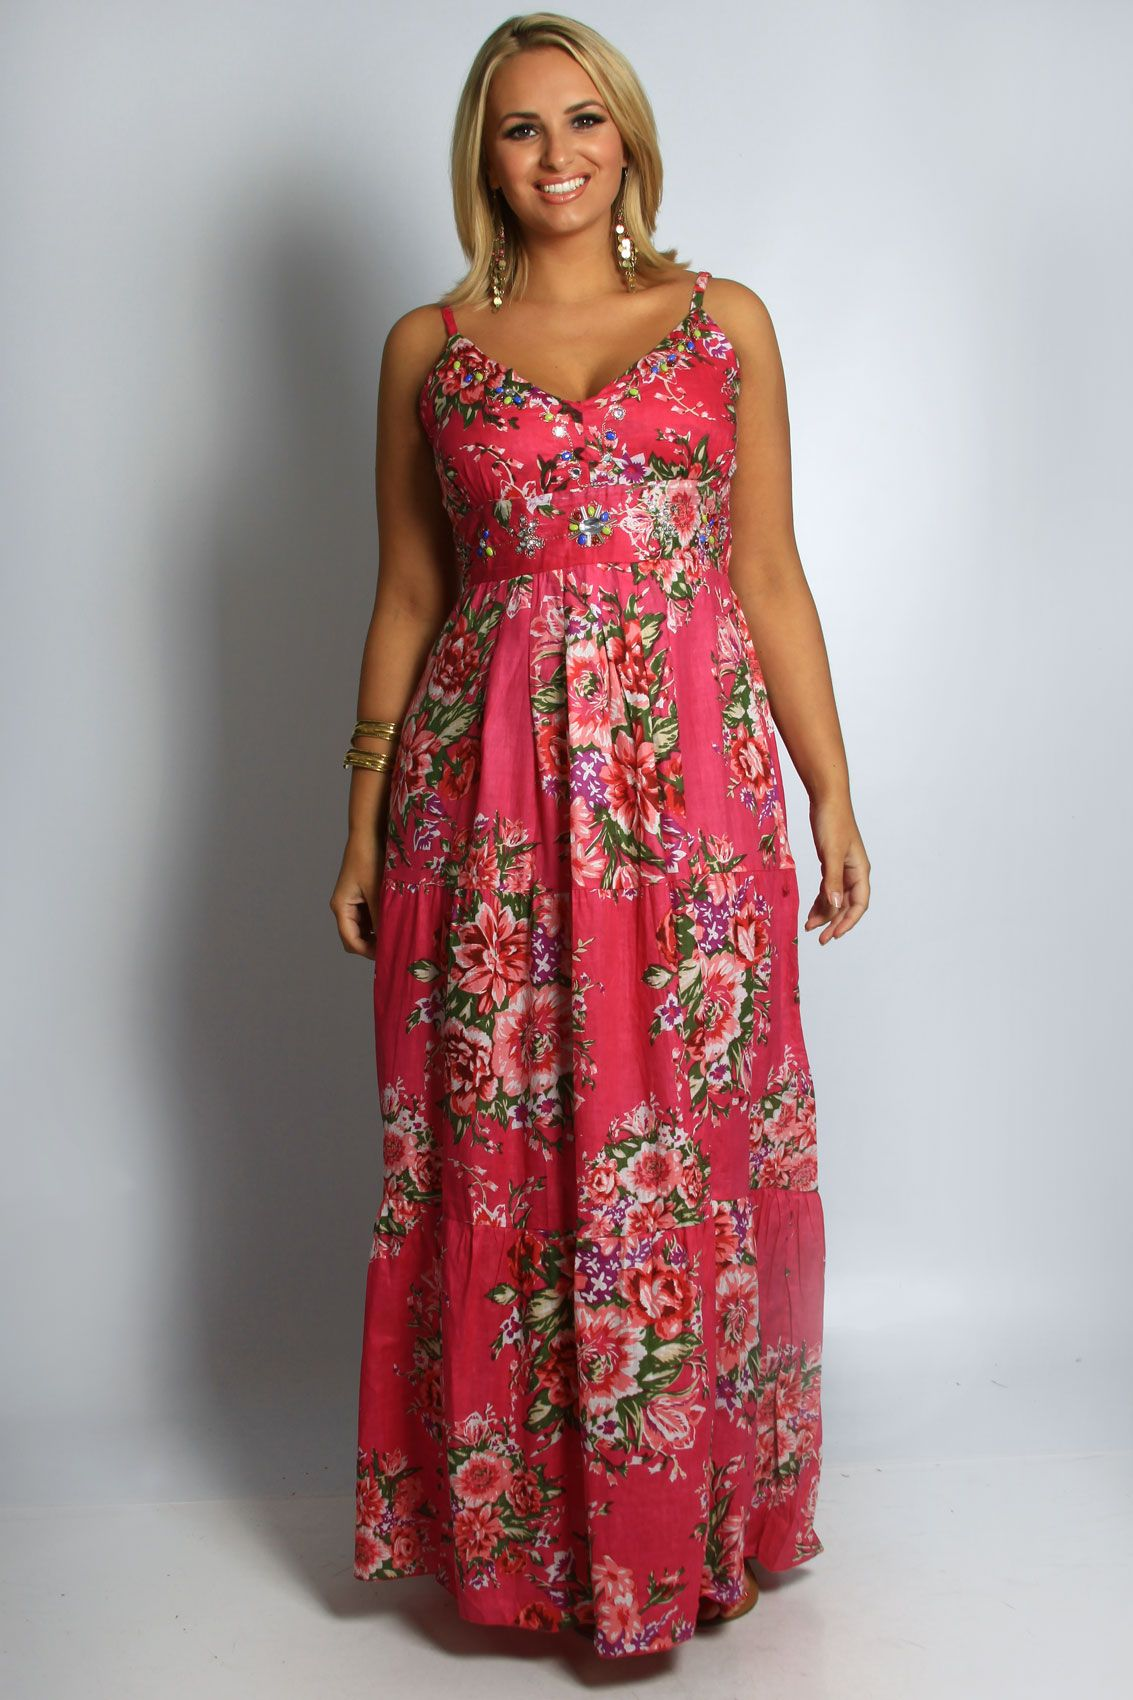 Plus Size Maxi Dresses For Weddings | Maxi Dresses | Pinterest ...